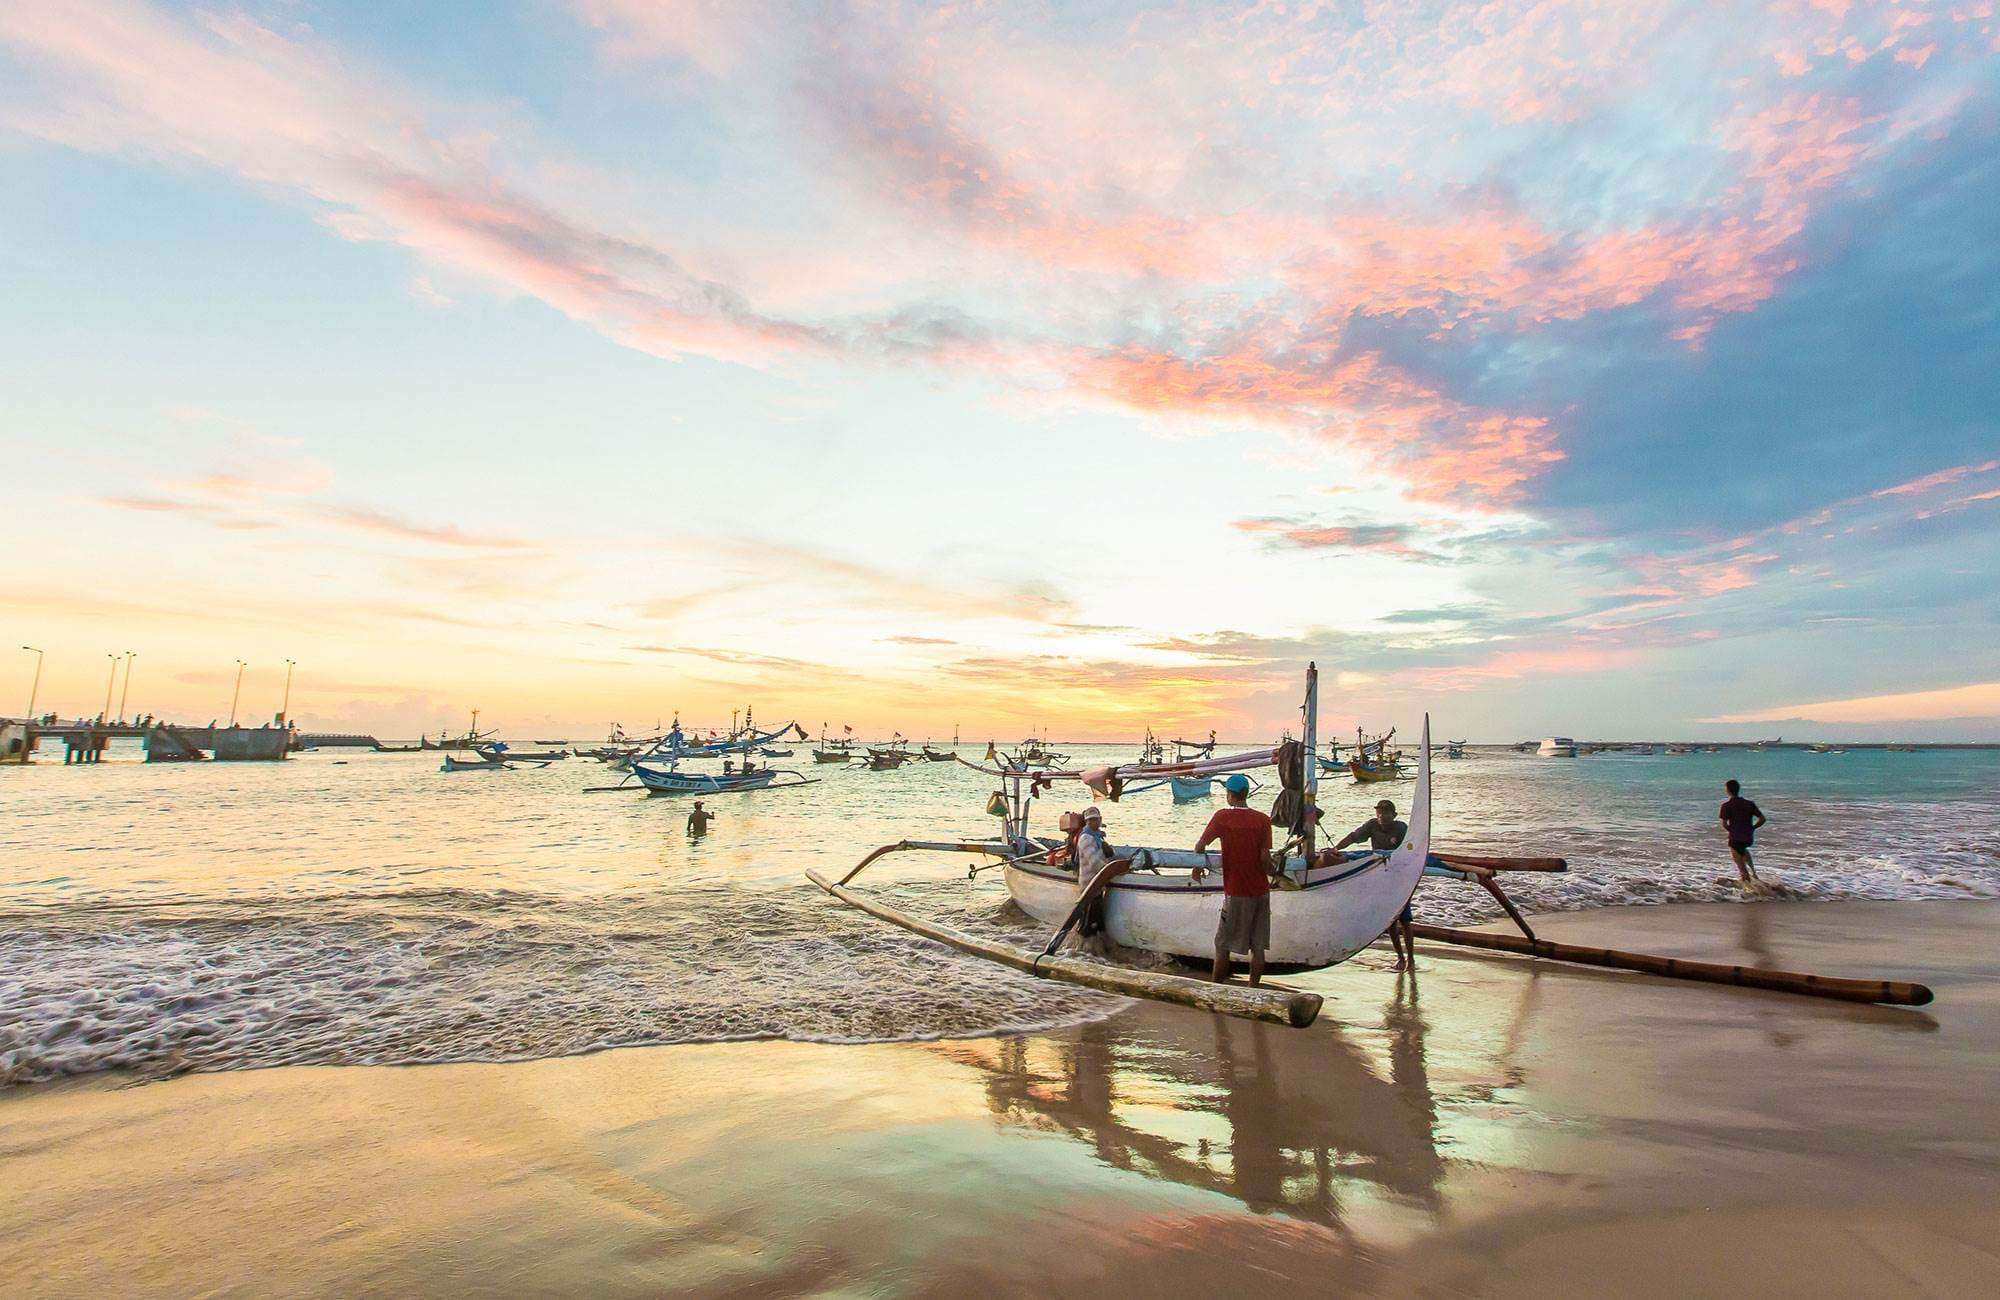 Indonesia Bali Jimbaran Beach Sunset Local Boats